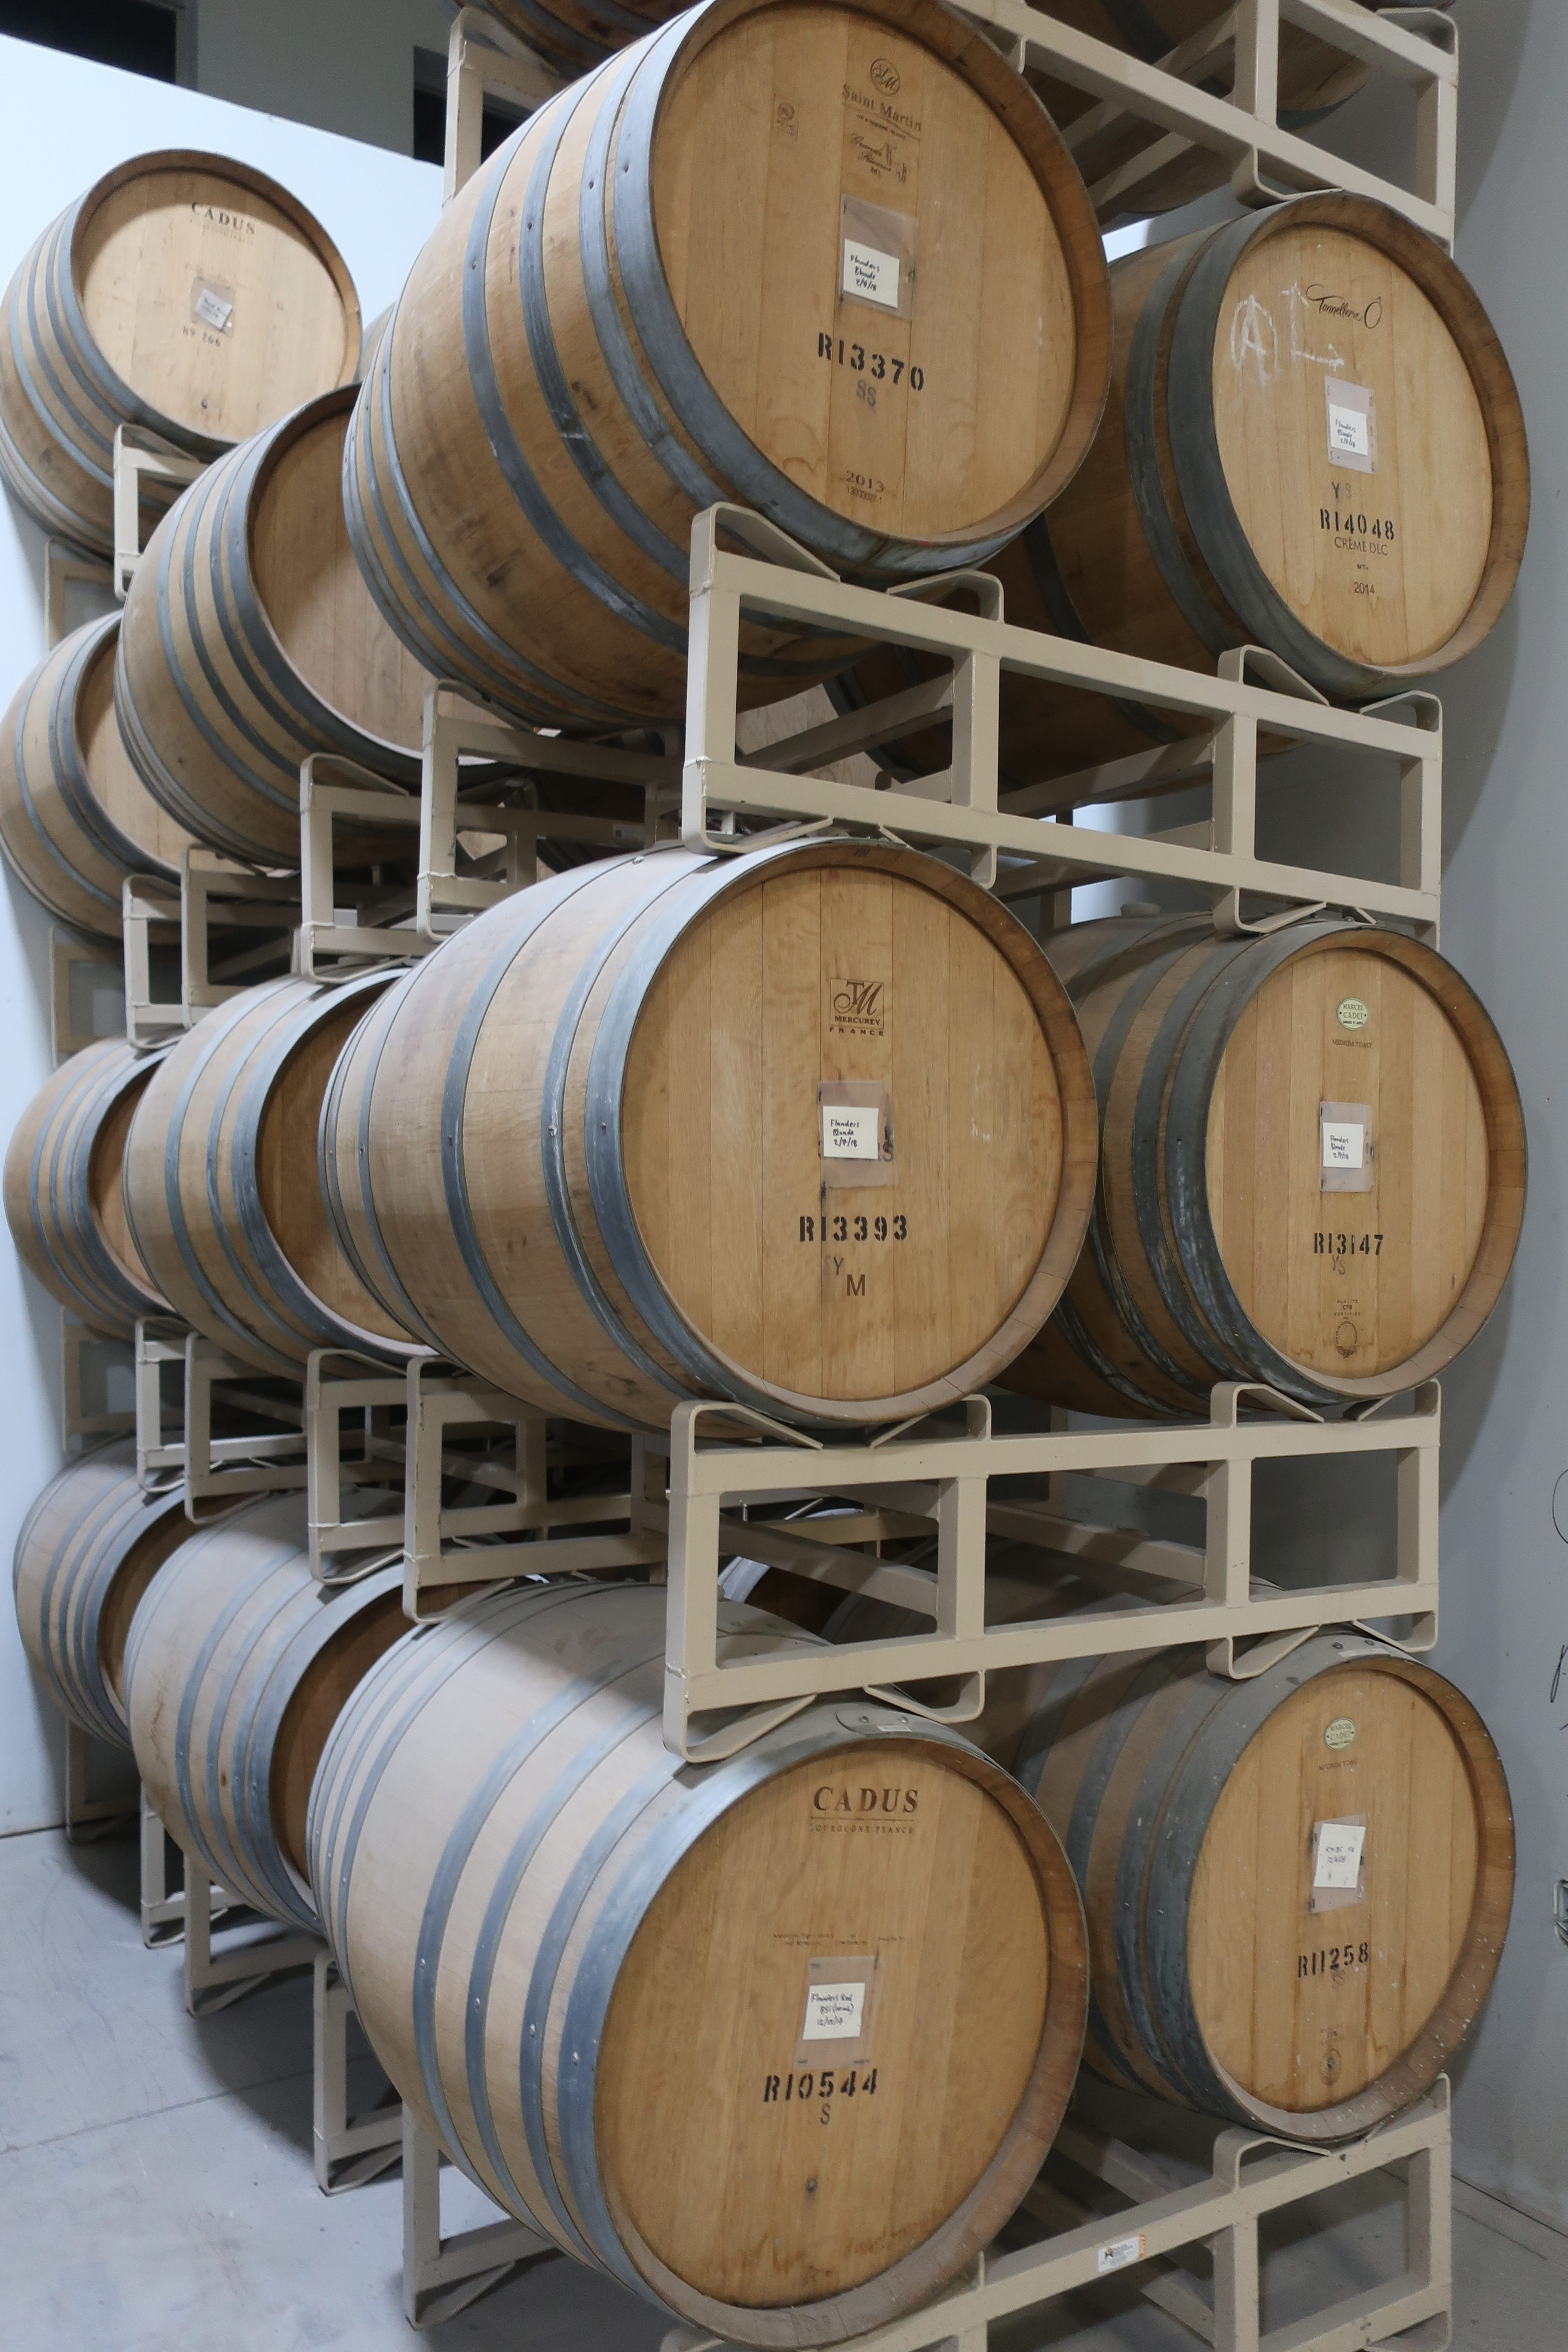 Barrels are stacke in varioius locations throughout the brewery at pFriem Family Brewers. There are also additional barrels aging at an offsite location.